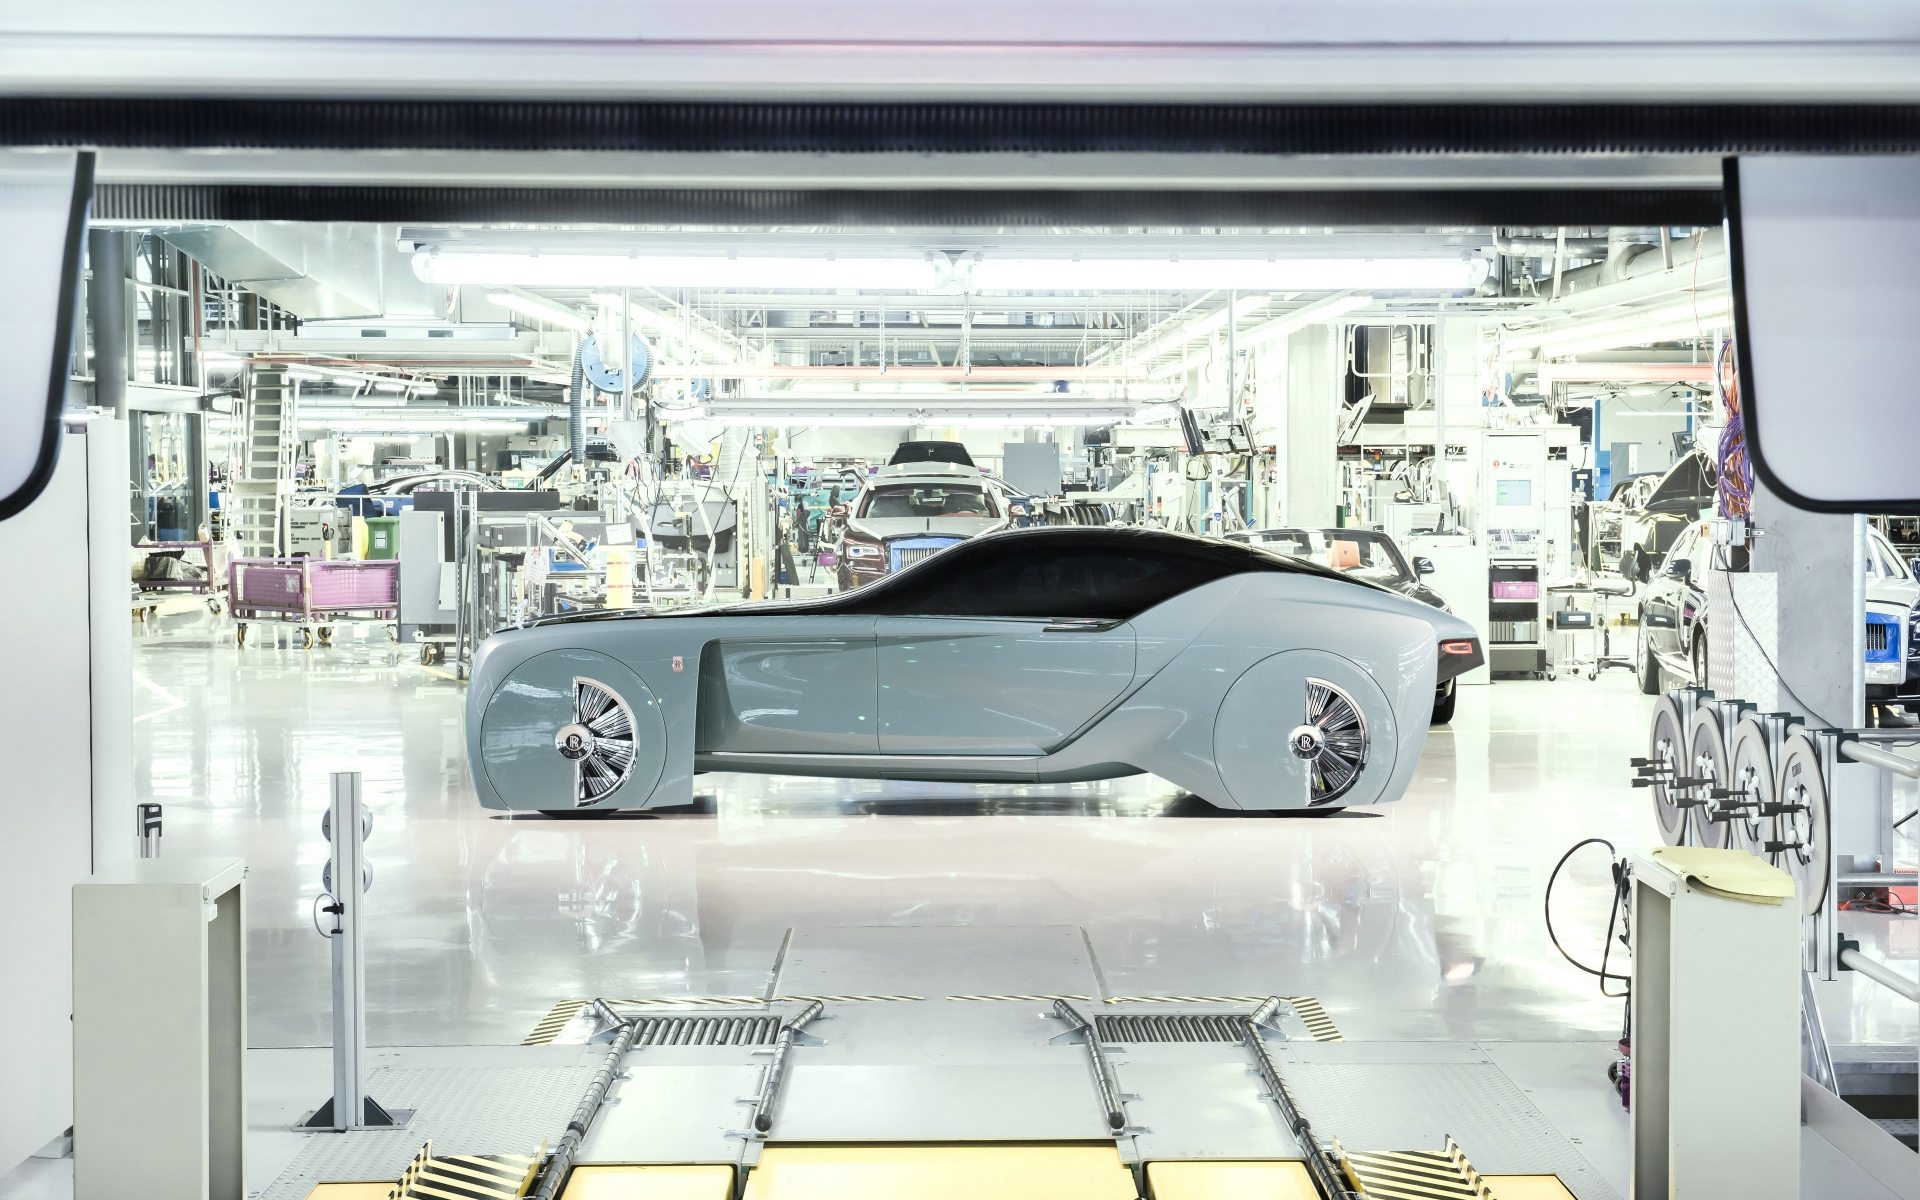 Rolls-Royce Vision Next 100 Concept 2016 - Photo 06 - Taille: 1920x1200